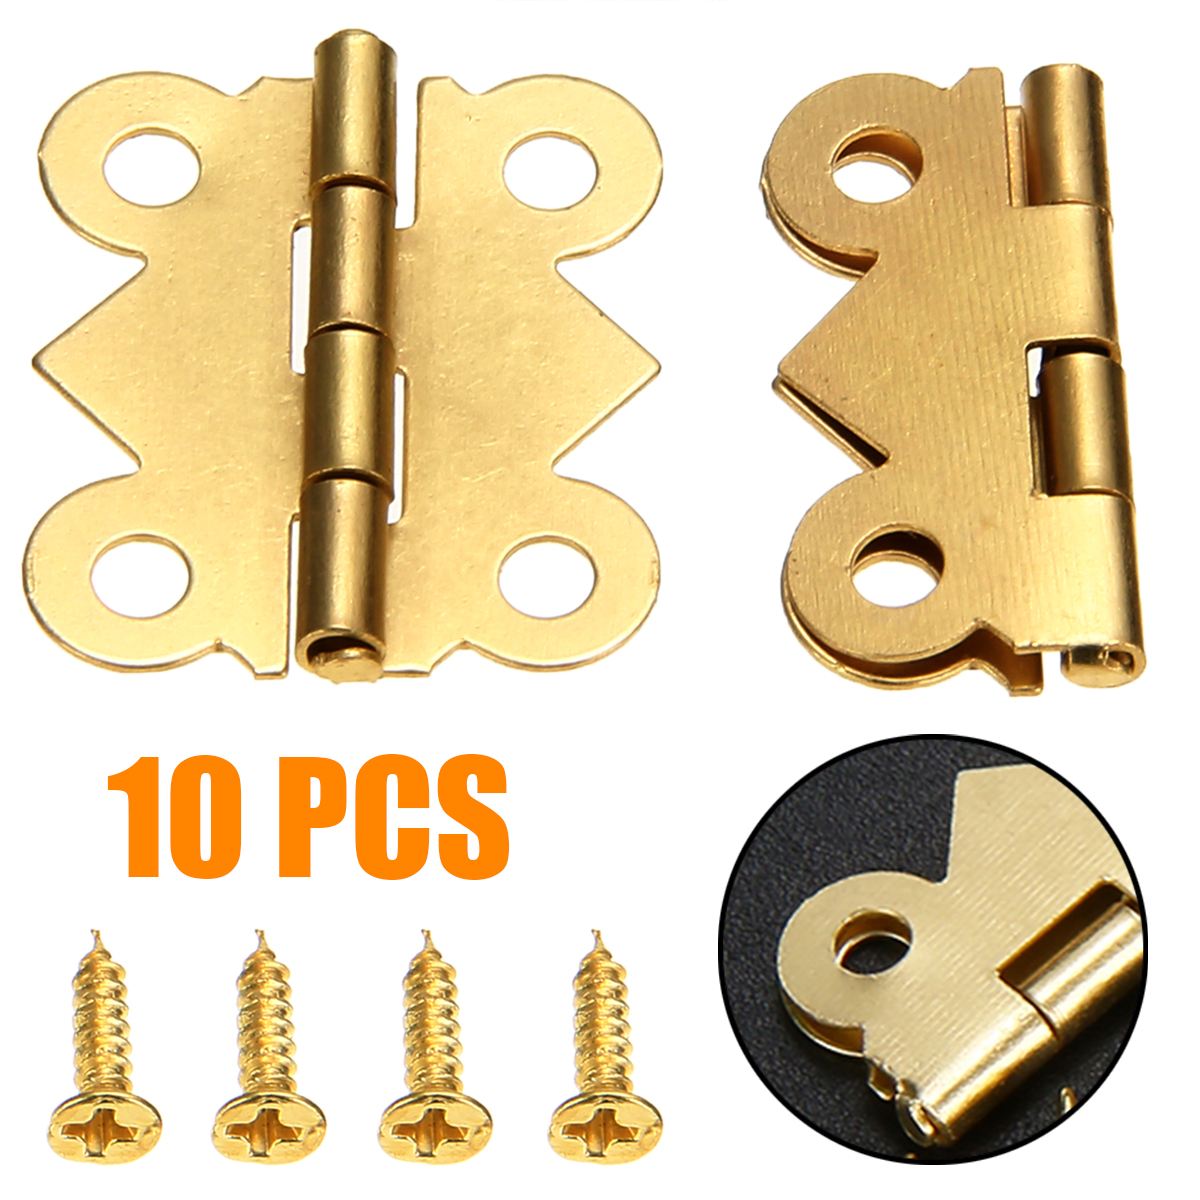 10x GOLD Butterfly Decorative Hinges Wood Jewellery Box Dolls House with SCREWS